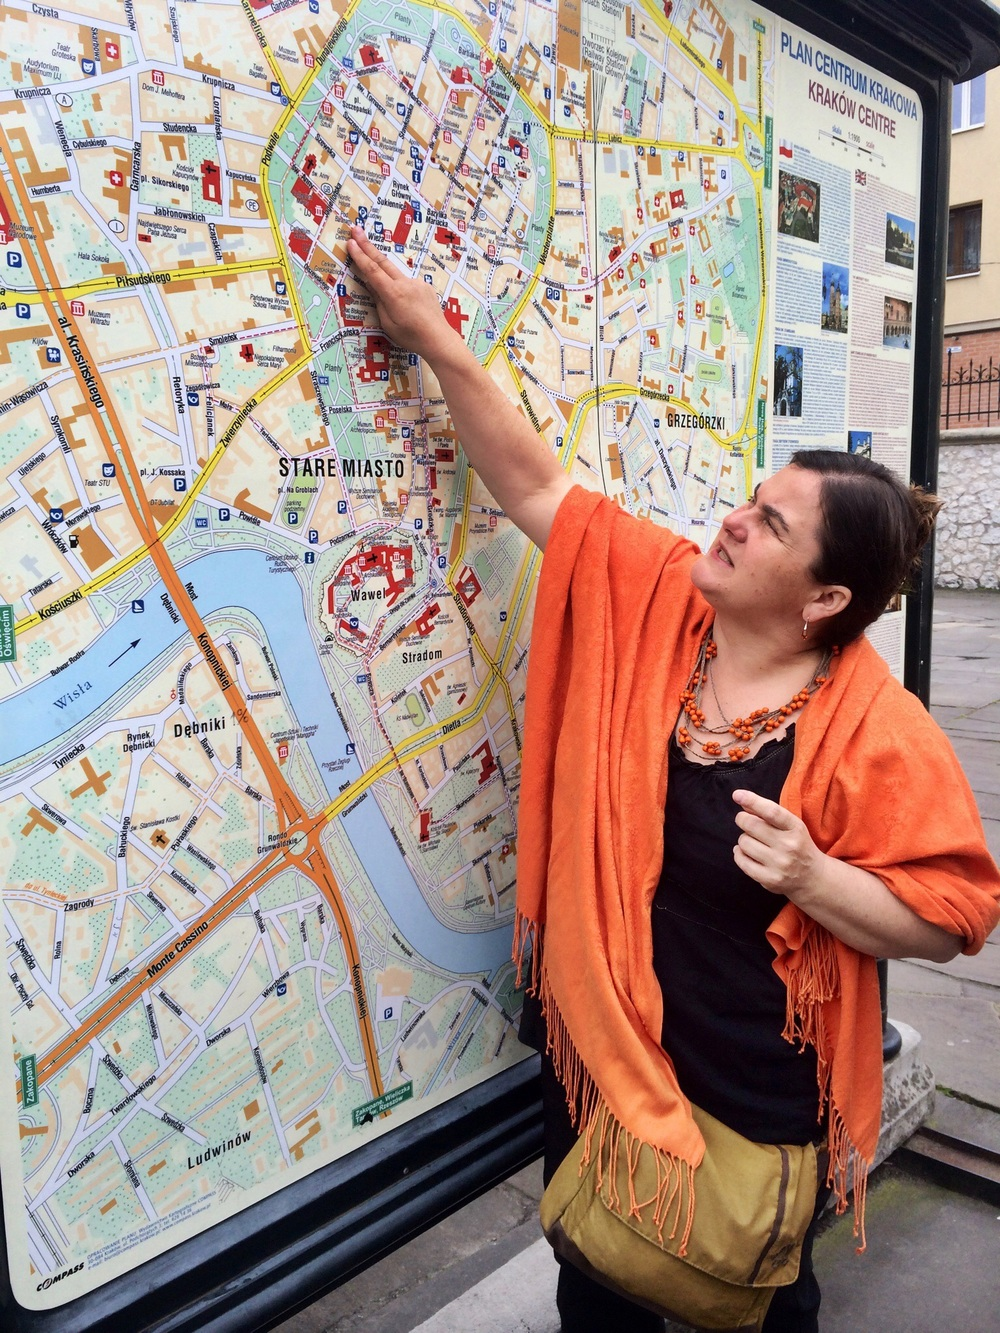 Marta, our guide, provides an overview of Krakow